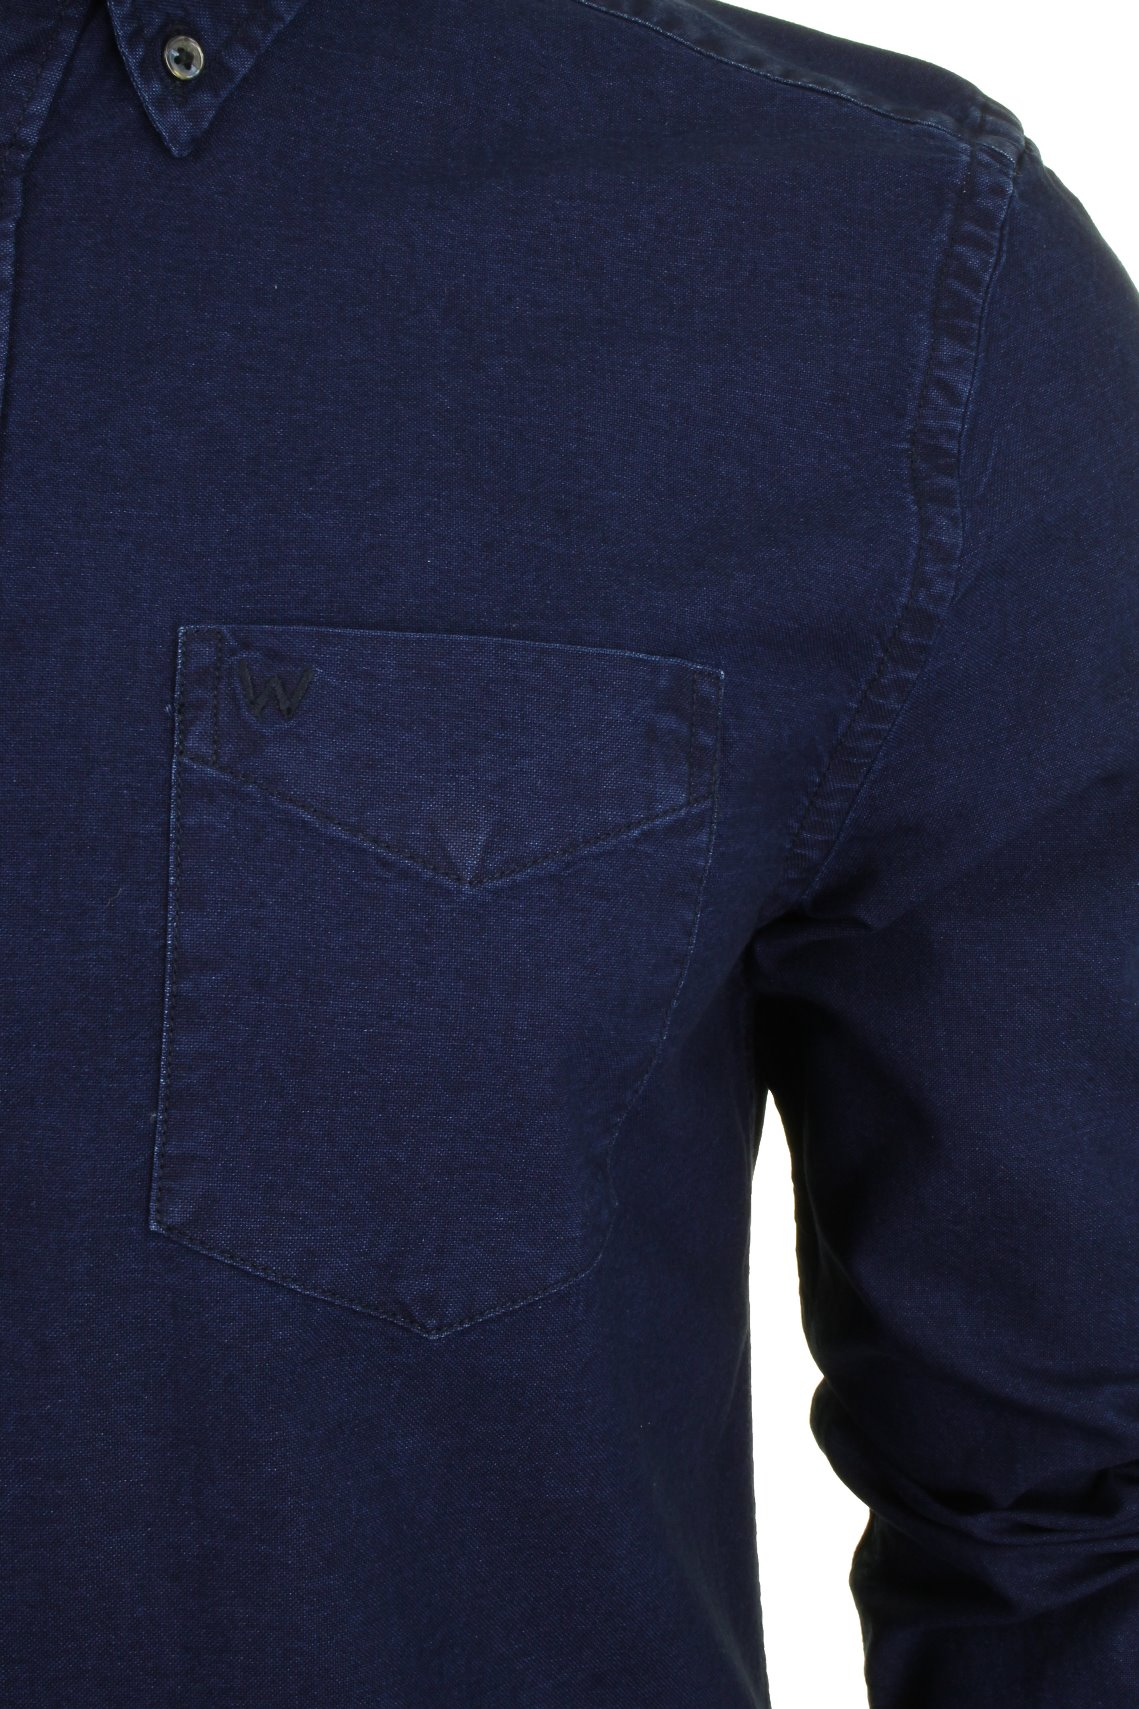 Mens-Wrangler-Button-Down-Shirt-Long-Sleeved thumbnail 3